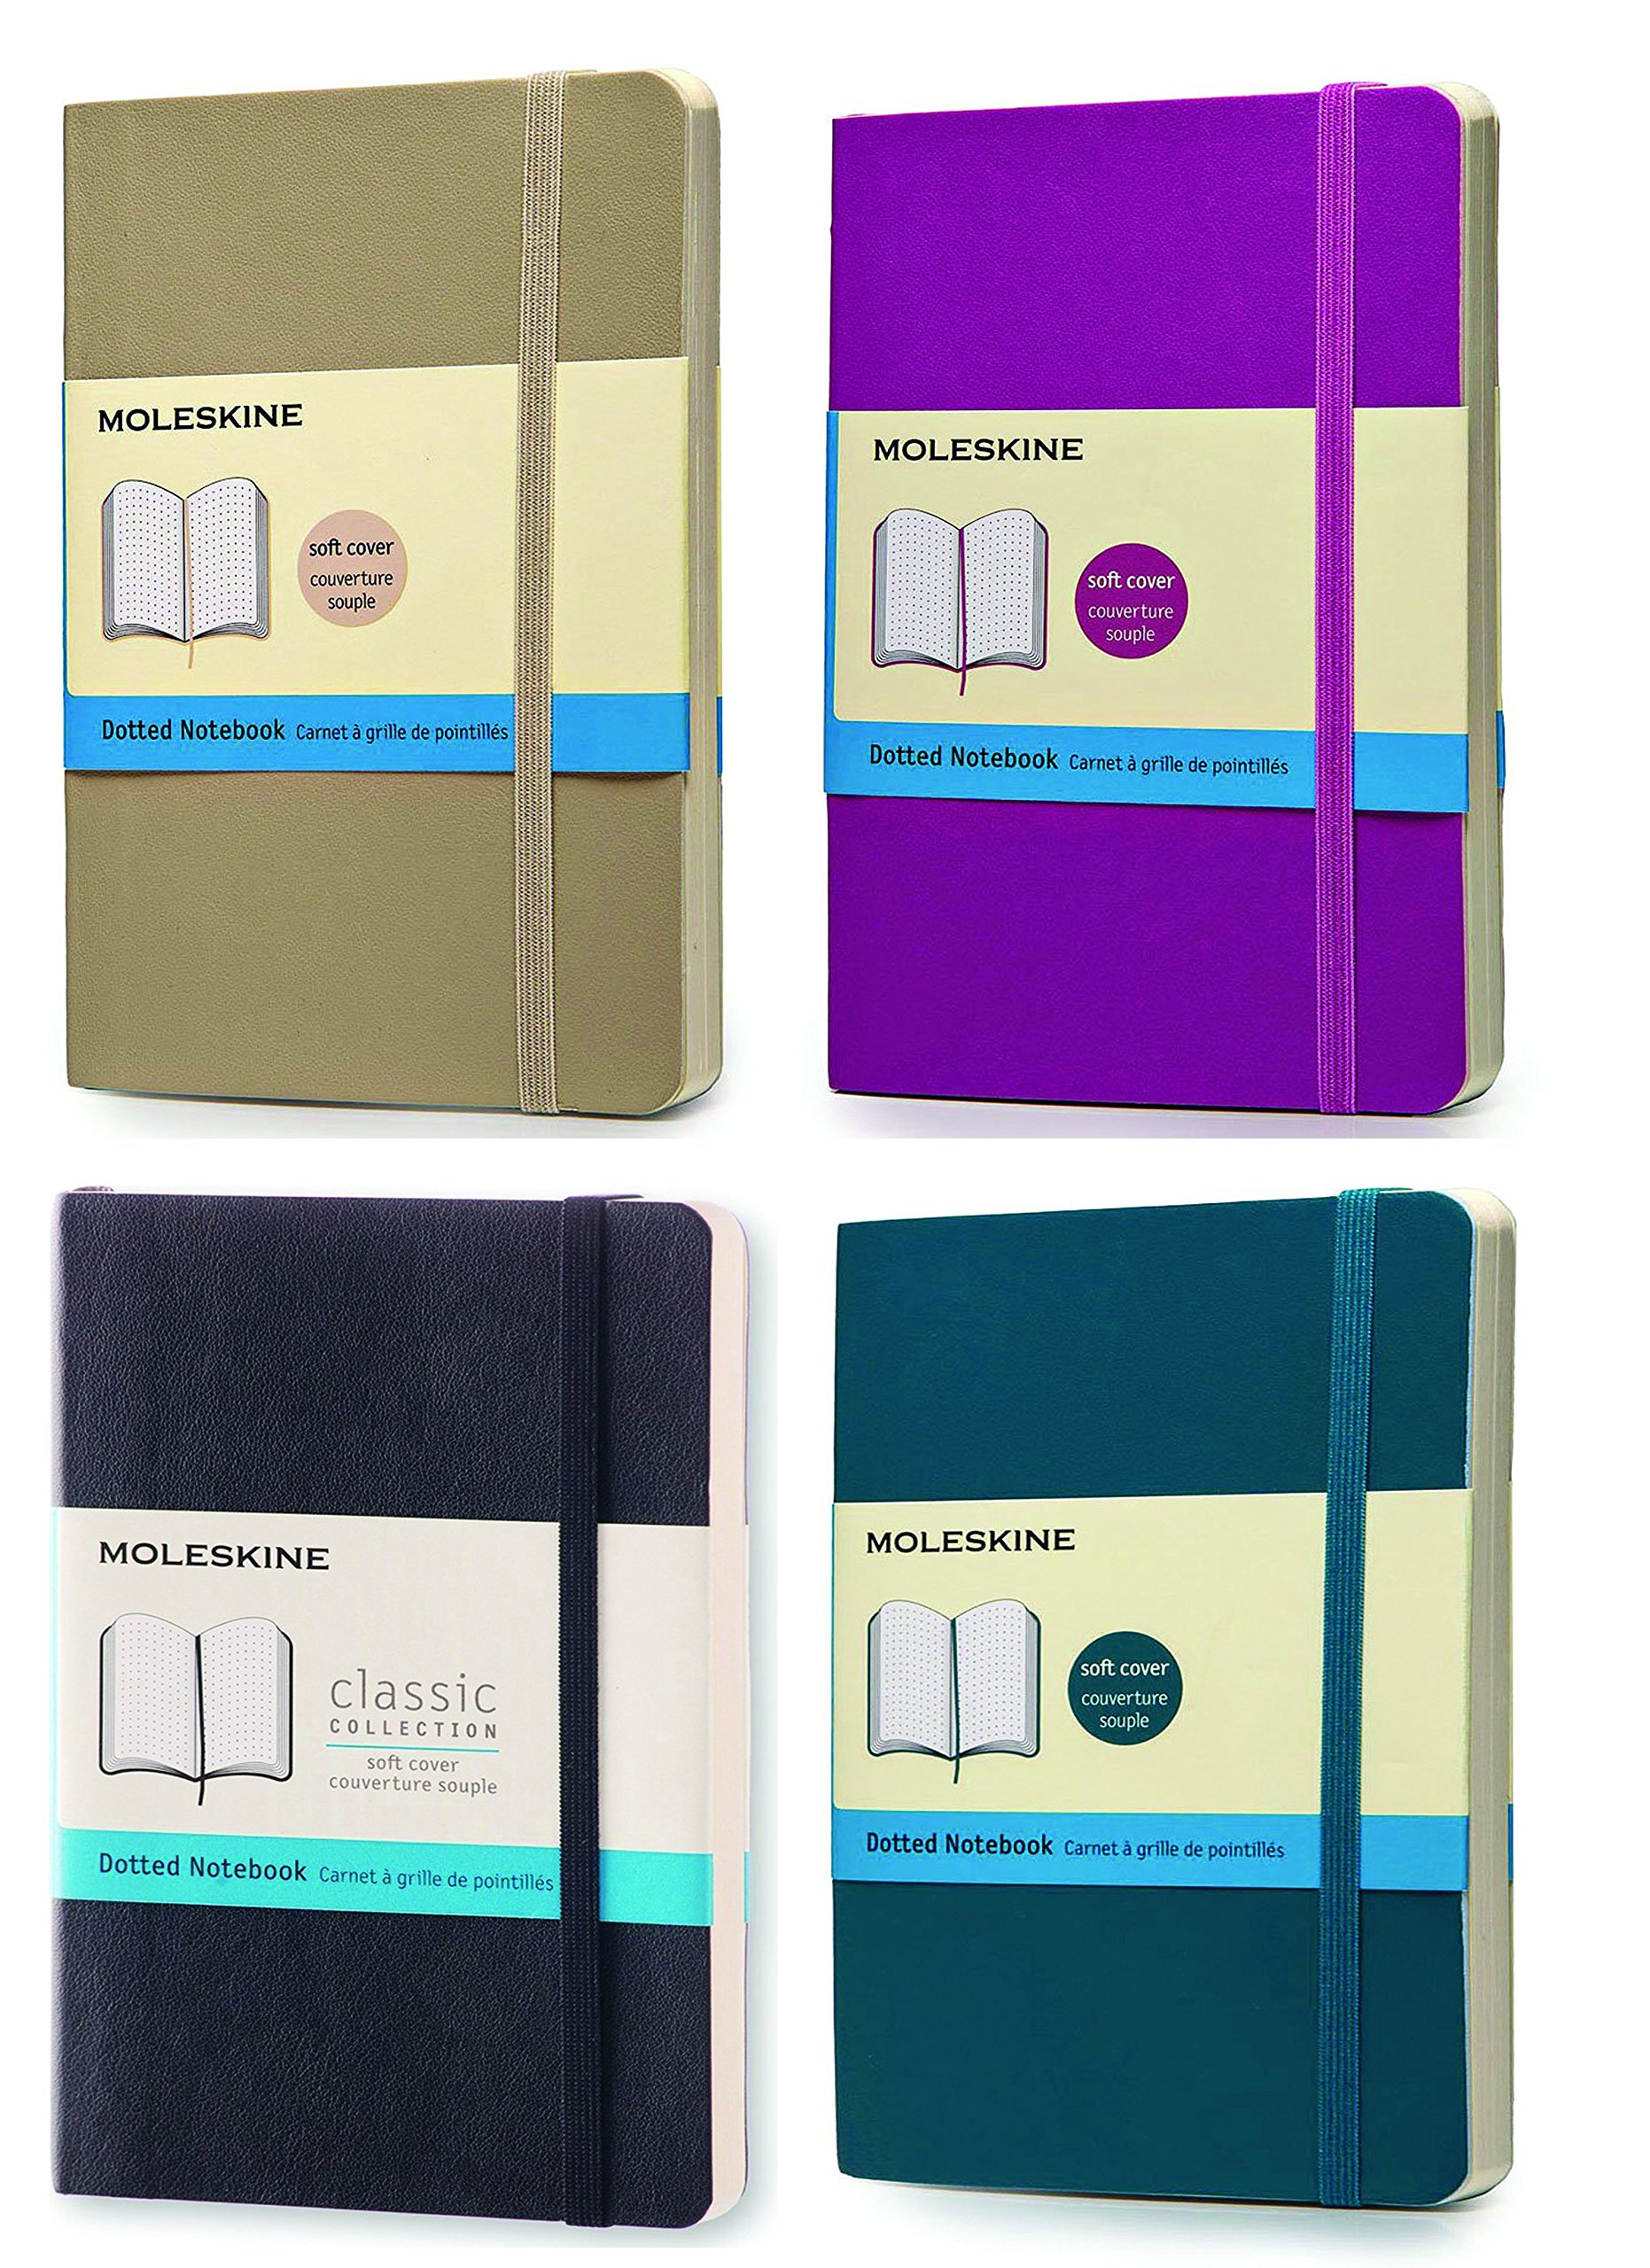 Pack of 4 Moleskine Classic Notebook, Pocket, Dotted , 1Underwater Blue,1 Orchid Purple,1 Khaki Beige, Black Soft Cover (3.5 x 5.5)